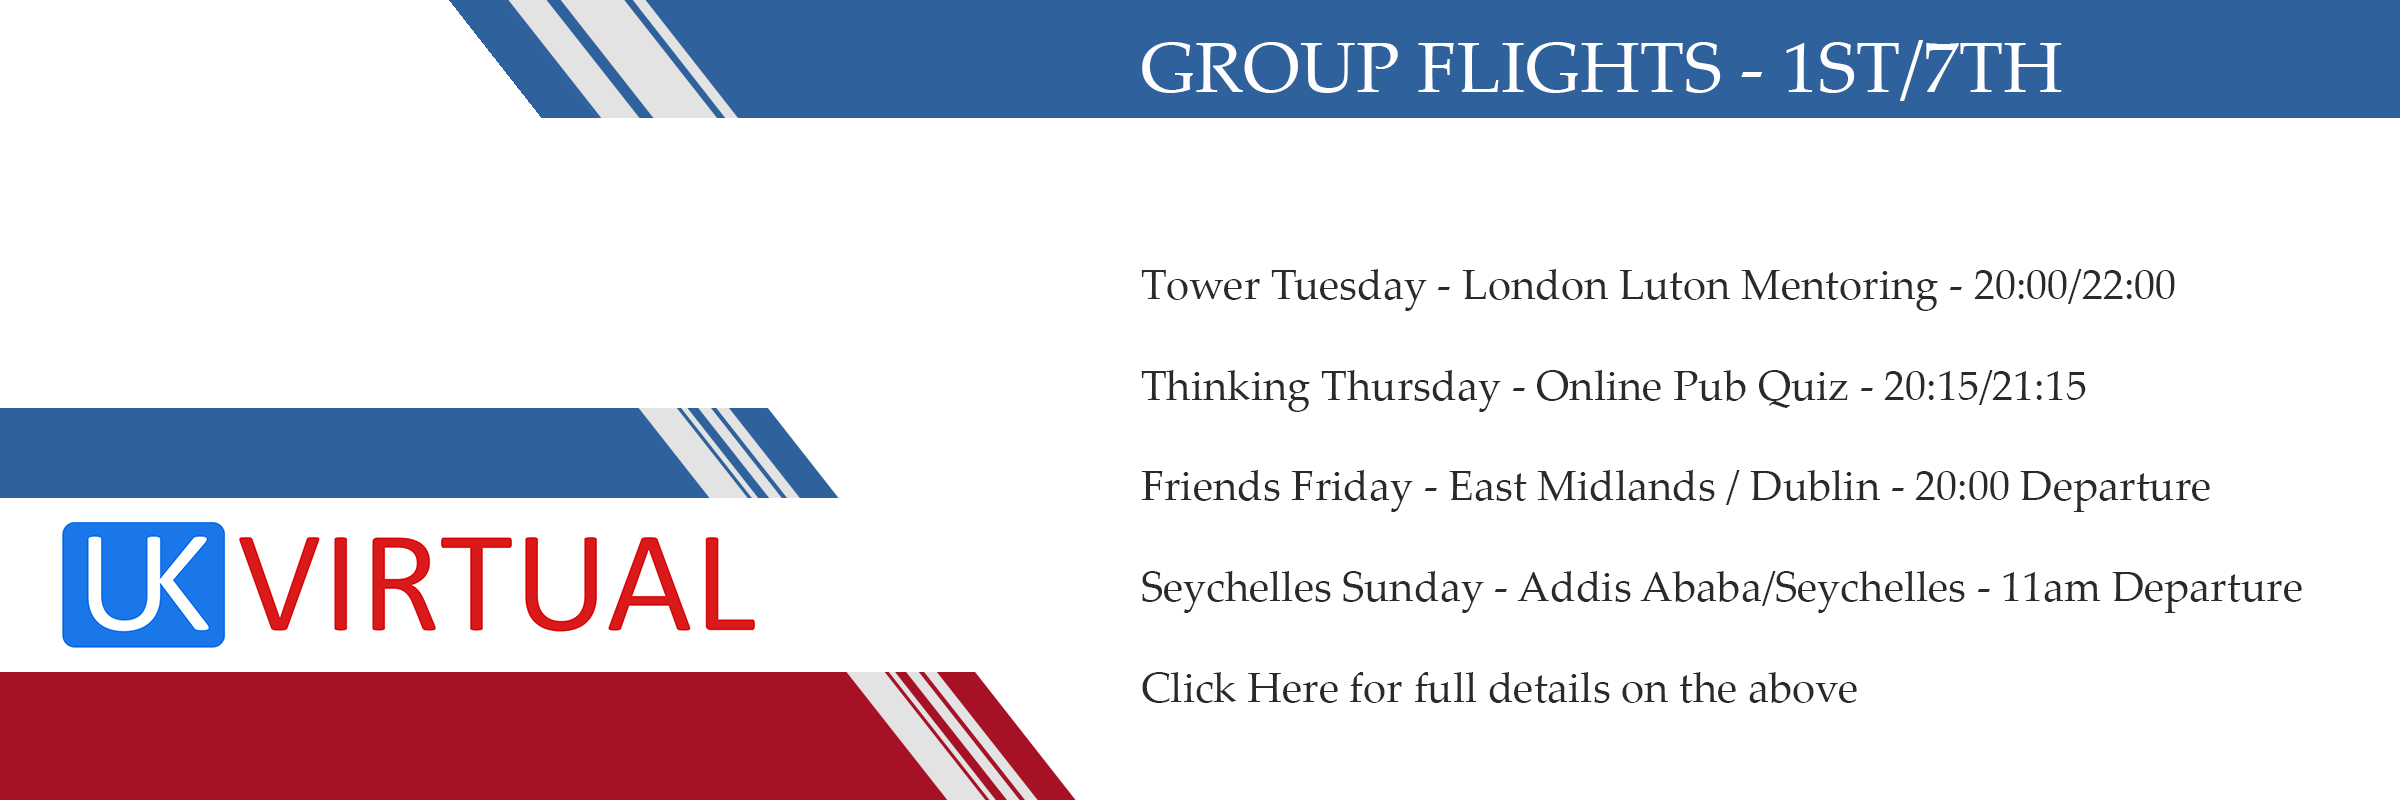 Group flights 1st/7th May 2020